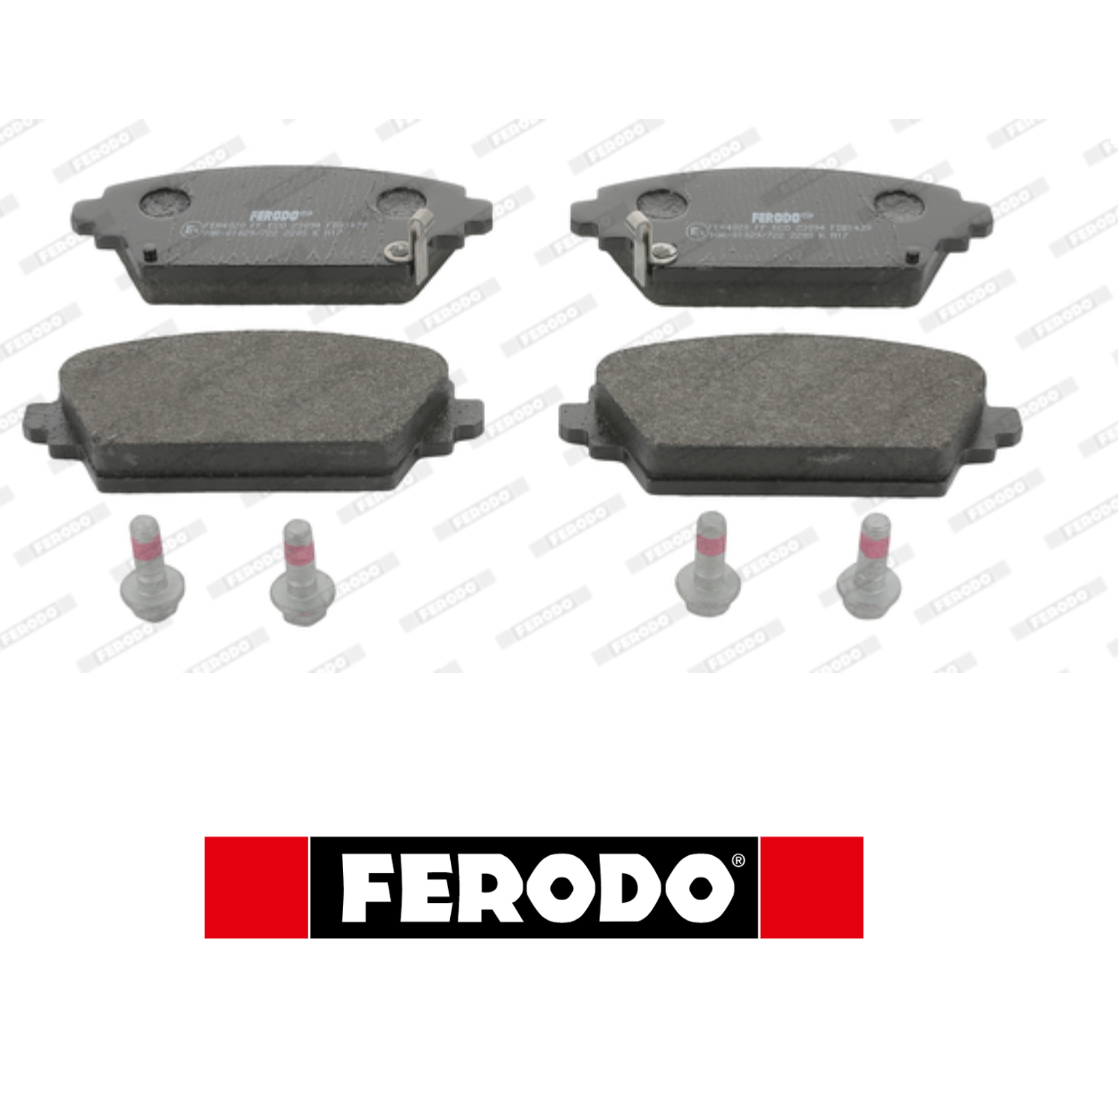 FRONT BRAKE PADS SERIES KIT HONDA FERODO FDB1439